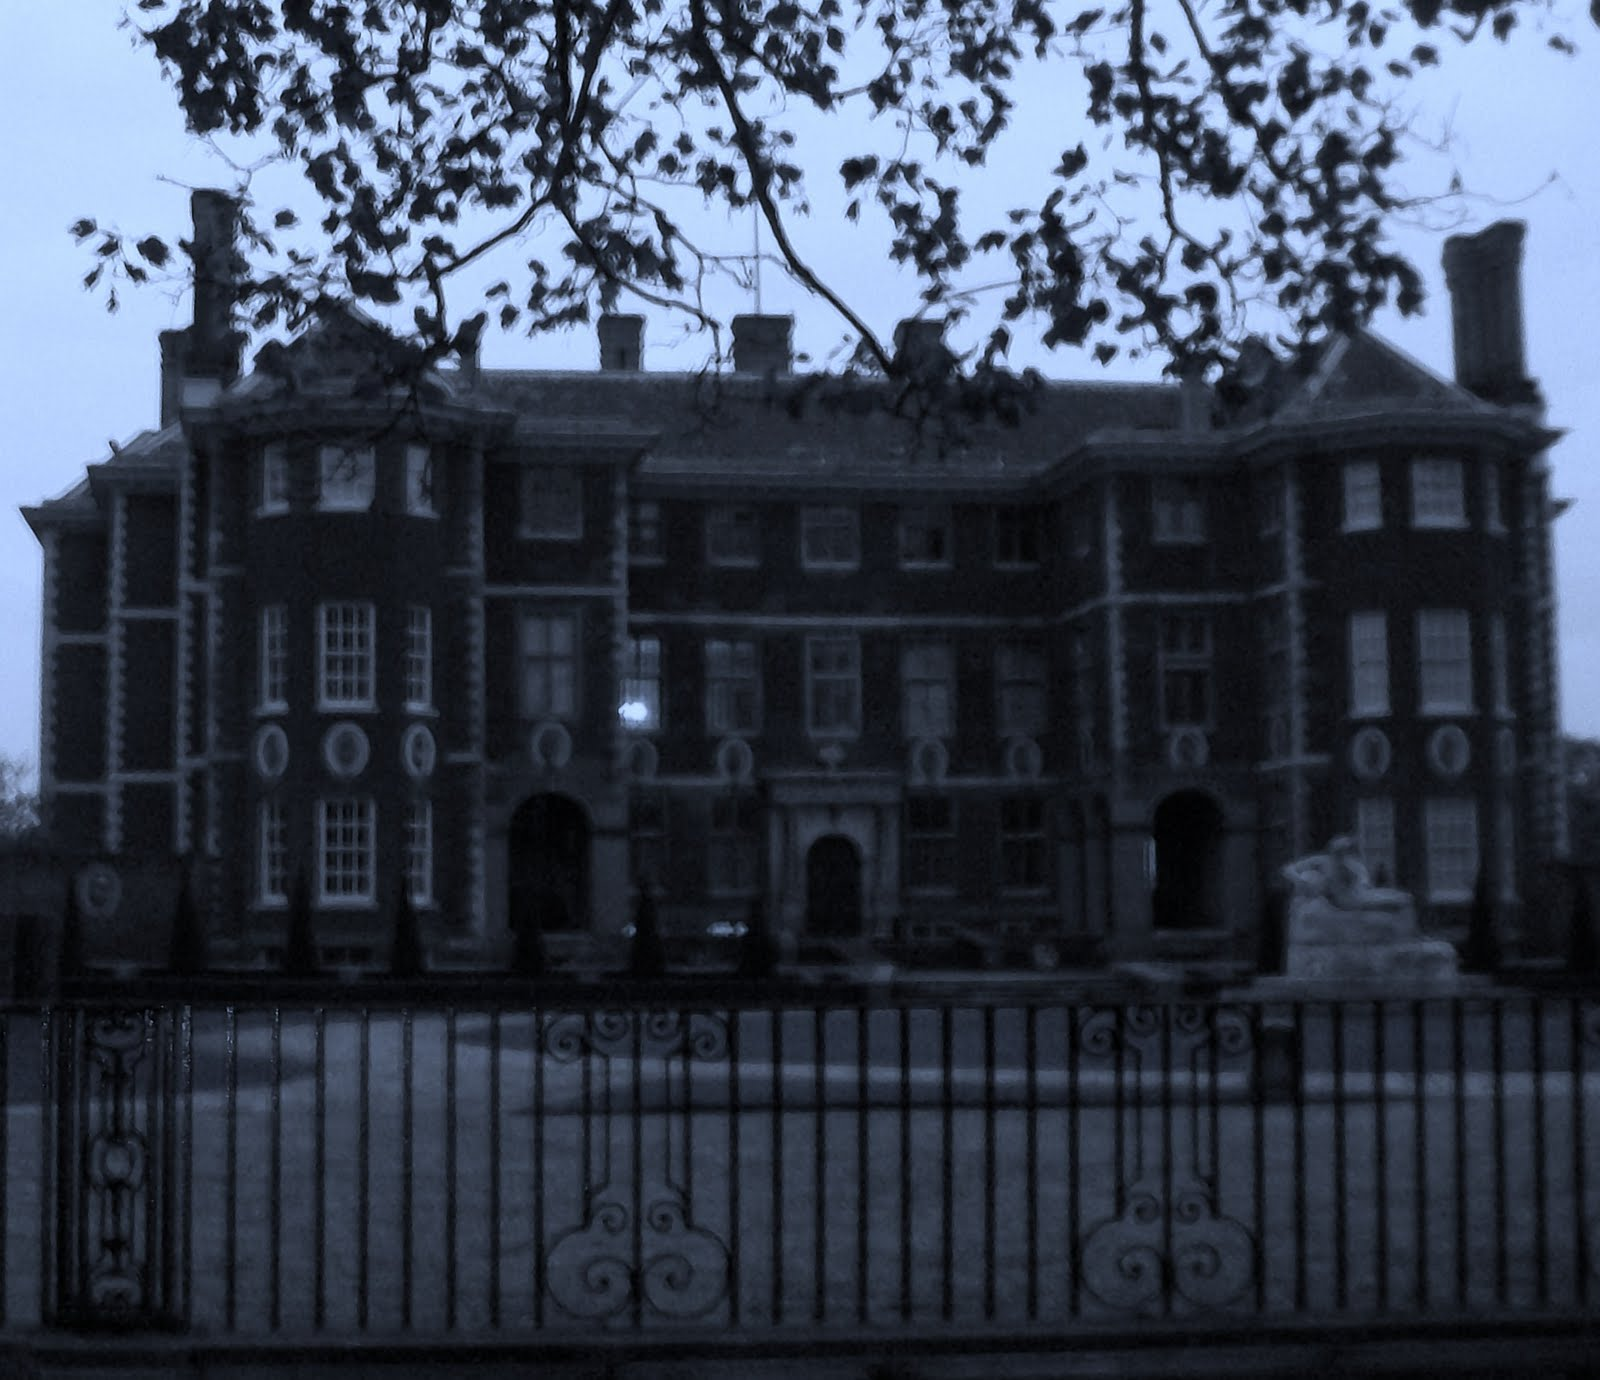 Haunted House York University: All About London: Ham House Haunted Stories London